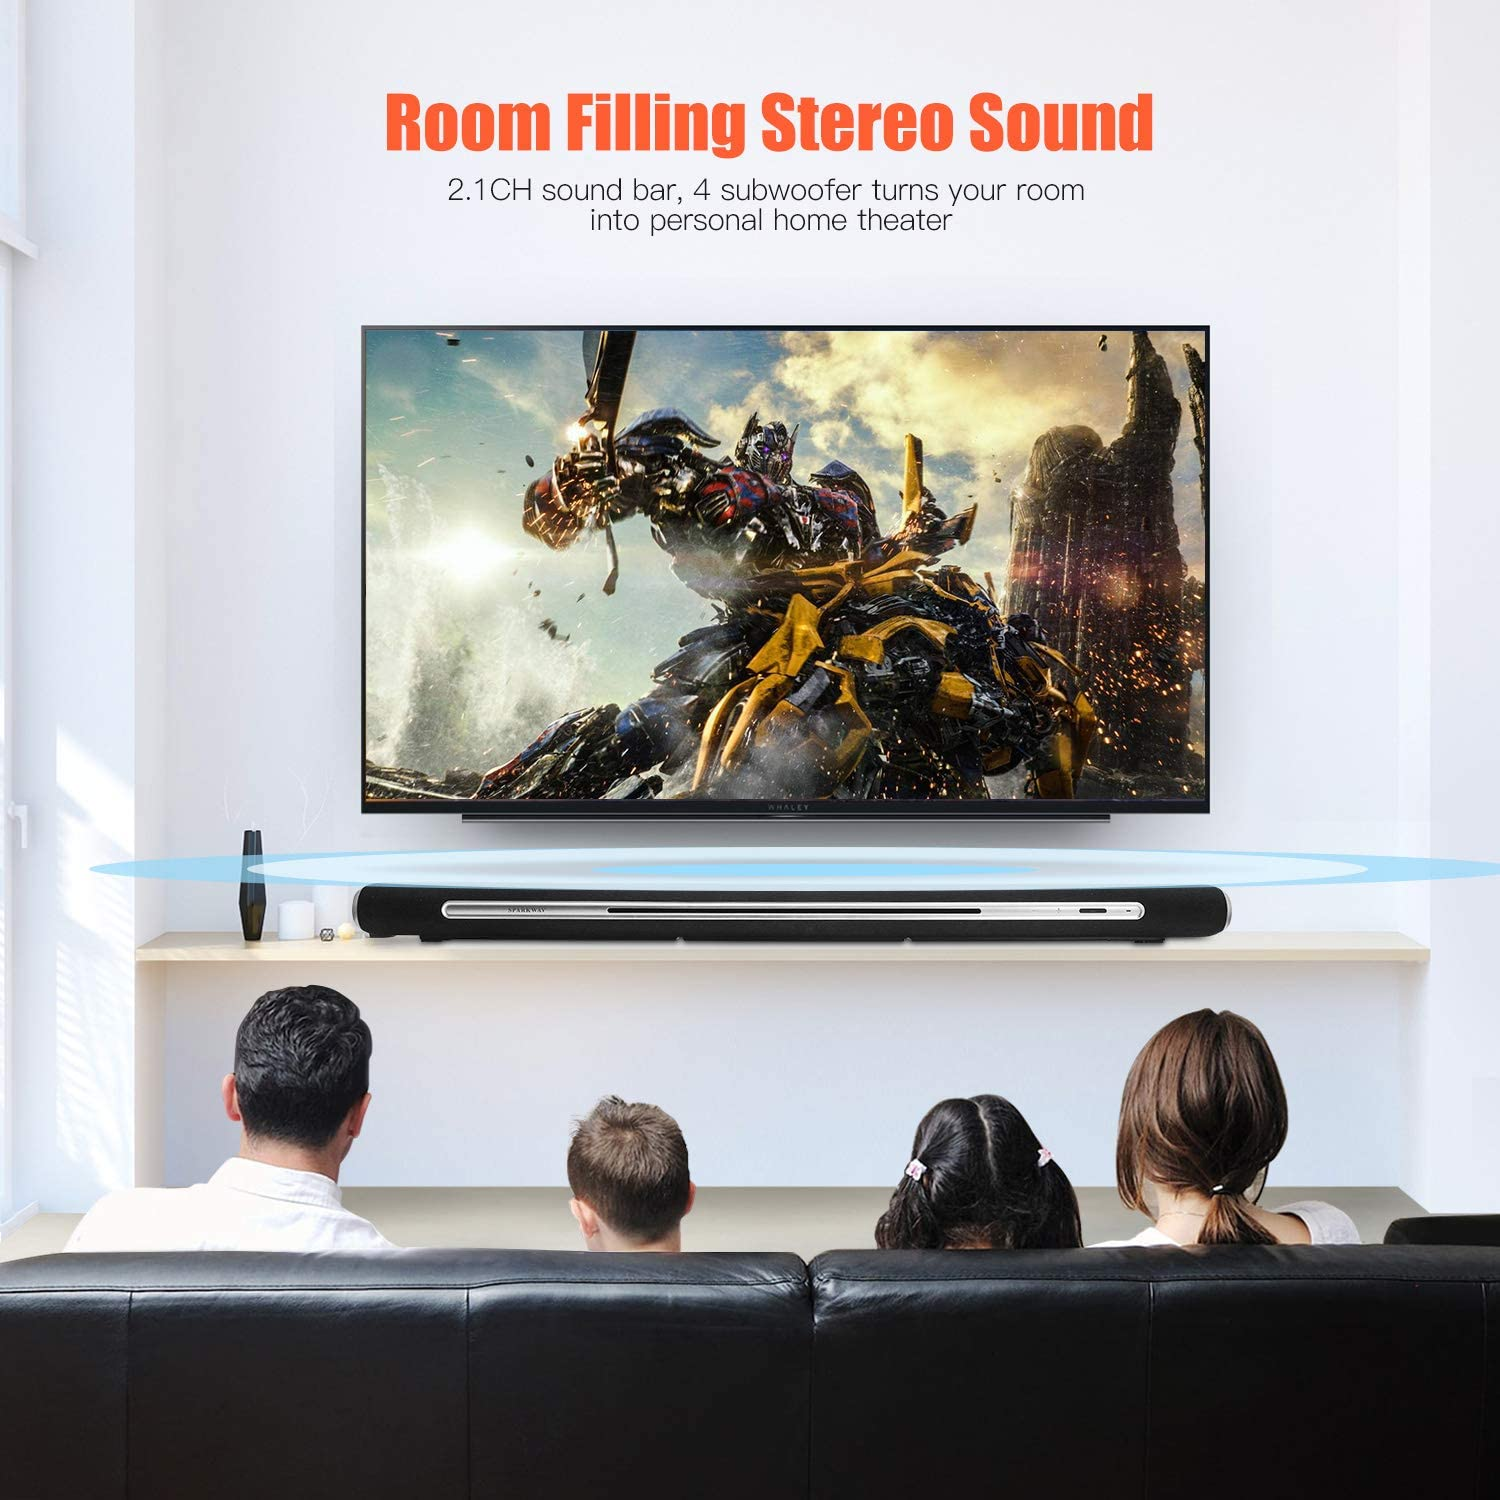 Soundbar For Tv Devices Surround Sound Wireless Bluetooth Speaker For Home Cinema Music Sound Bar With Subwoofer 35 Inch Channel 2 1 60 W 2 Remote Optical 4 Tweeters 2 Subwoofers Touch Usb Mp3 Hifi